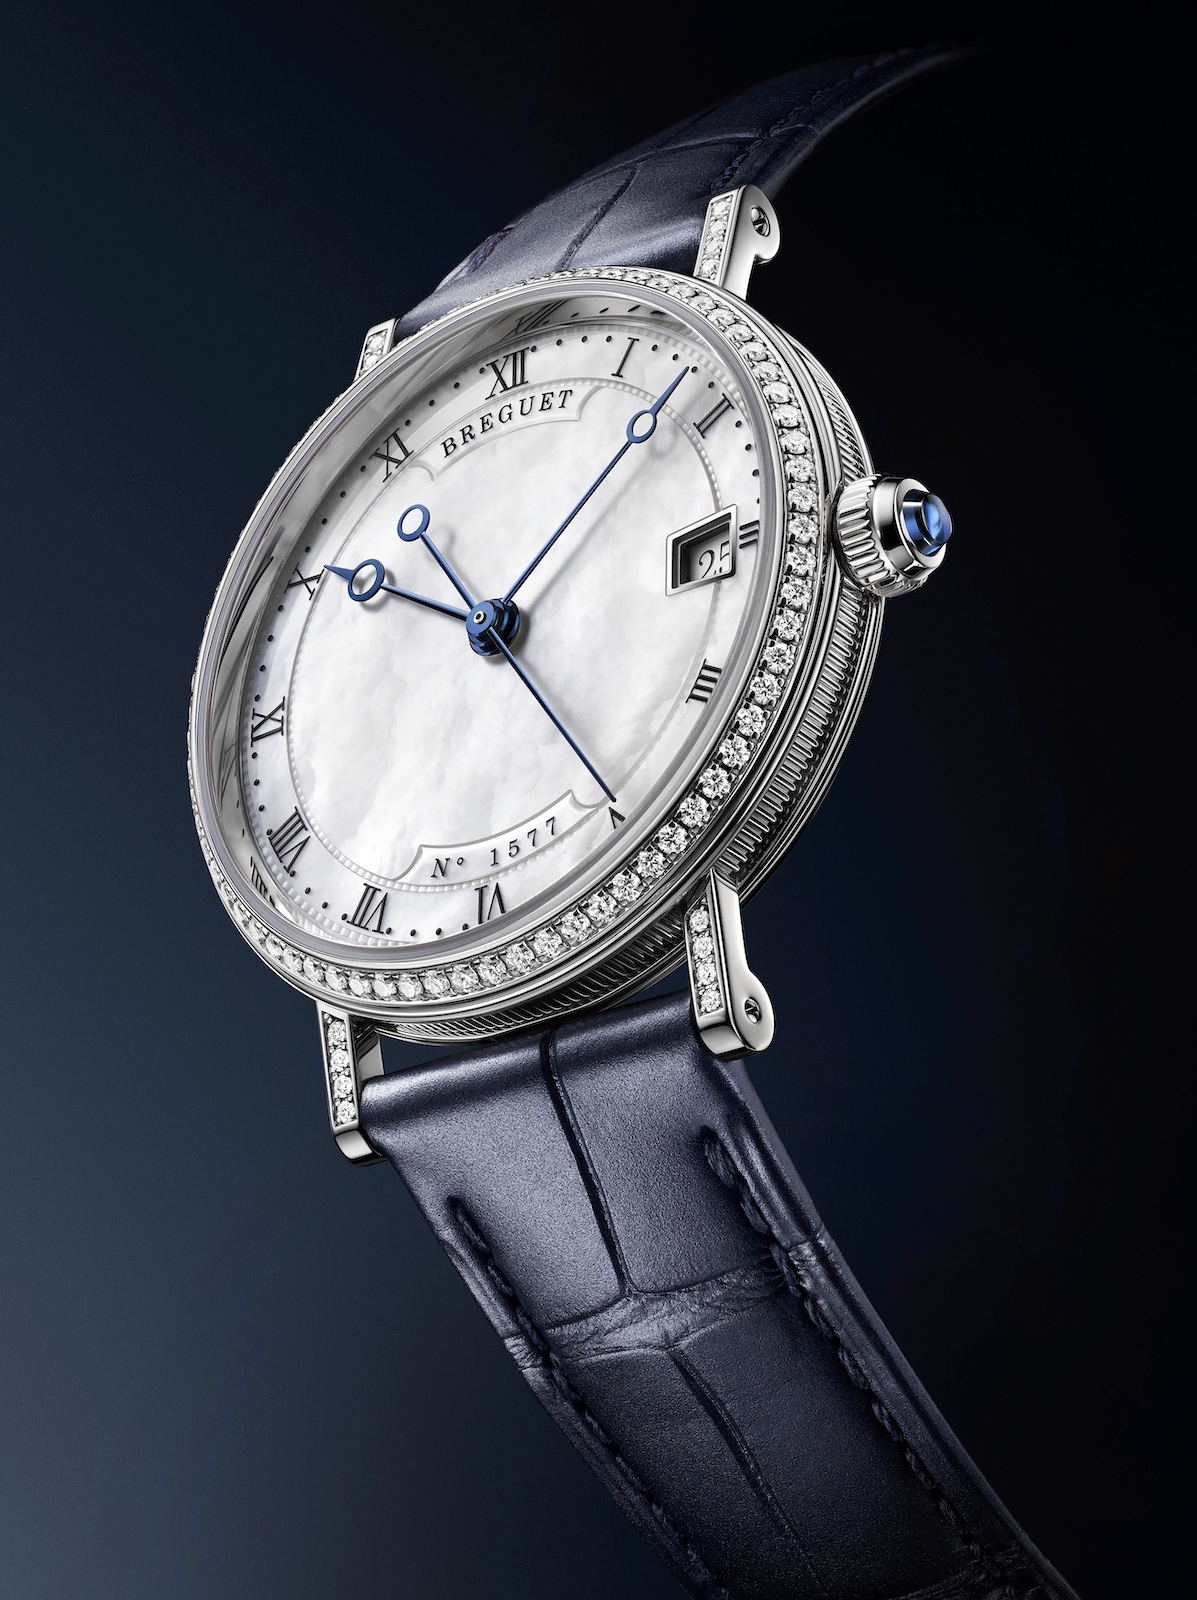 Breguet en el Time to Move 2019 - Classique Dame 9068 WG